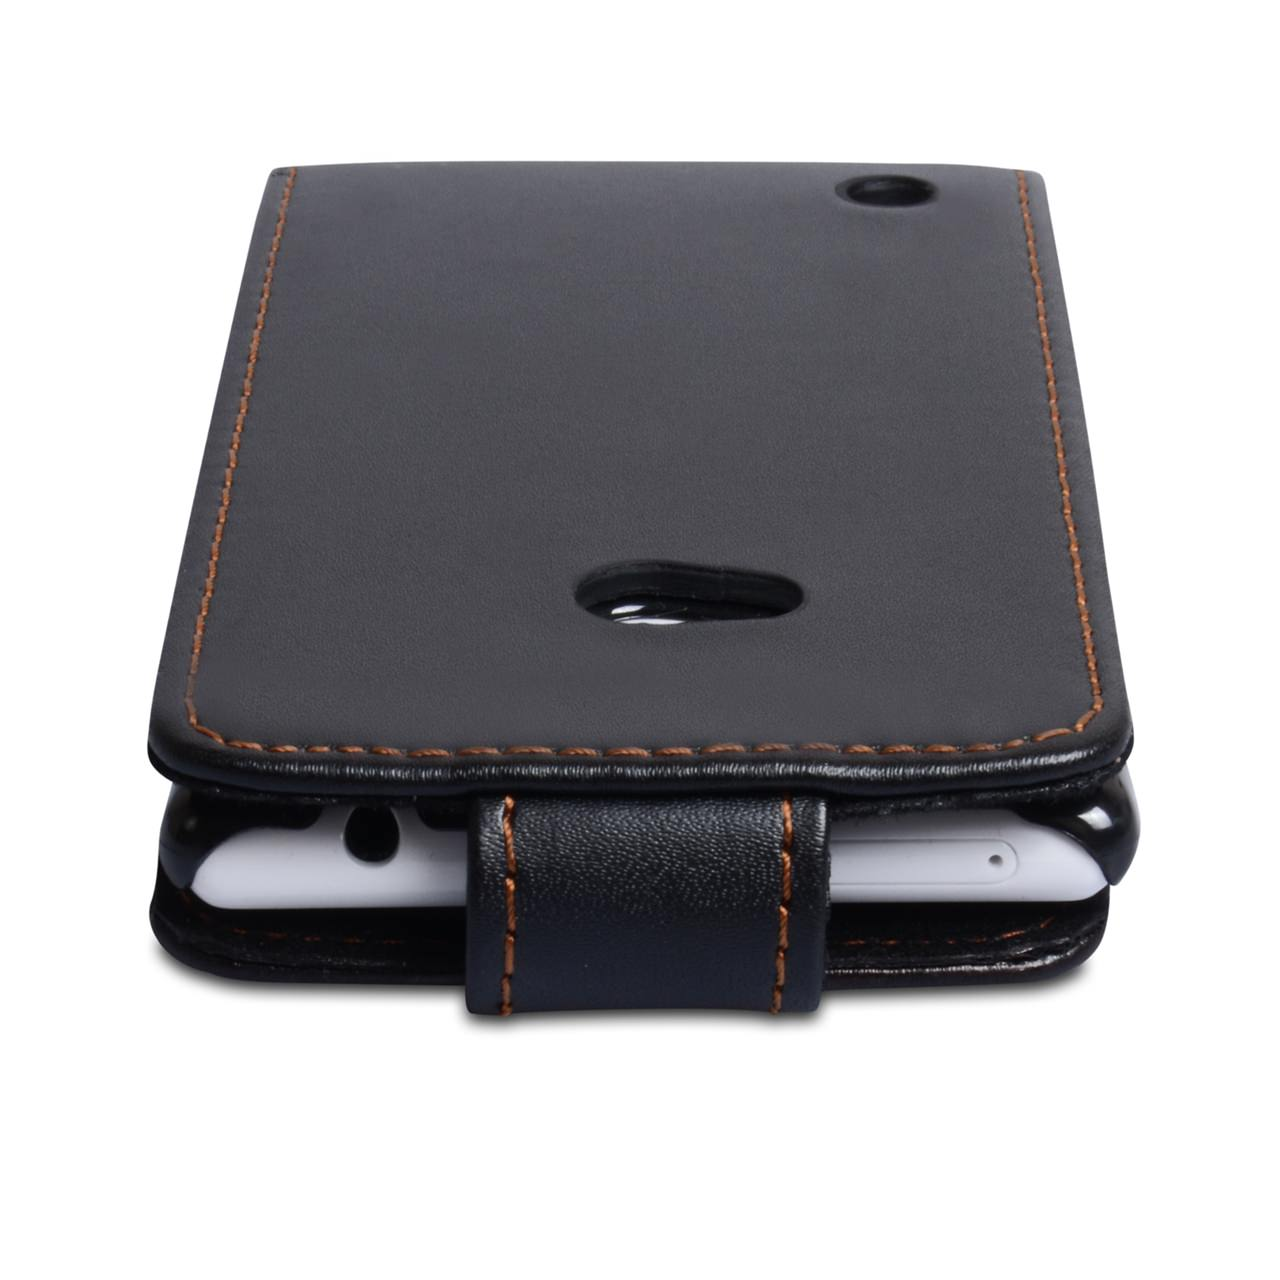 YouSave Accessories Nokia Lumia 720 Leather Effect Flip Case - Black